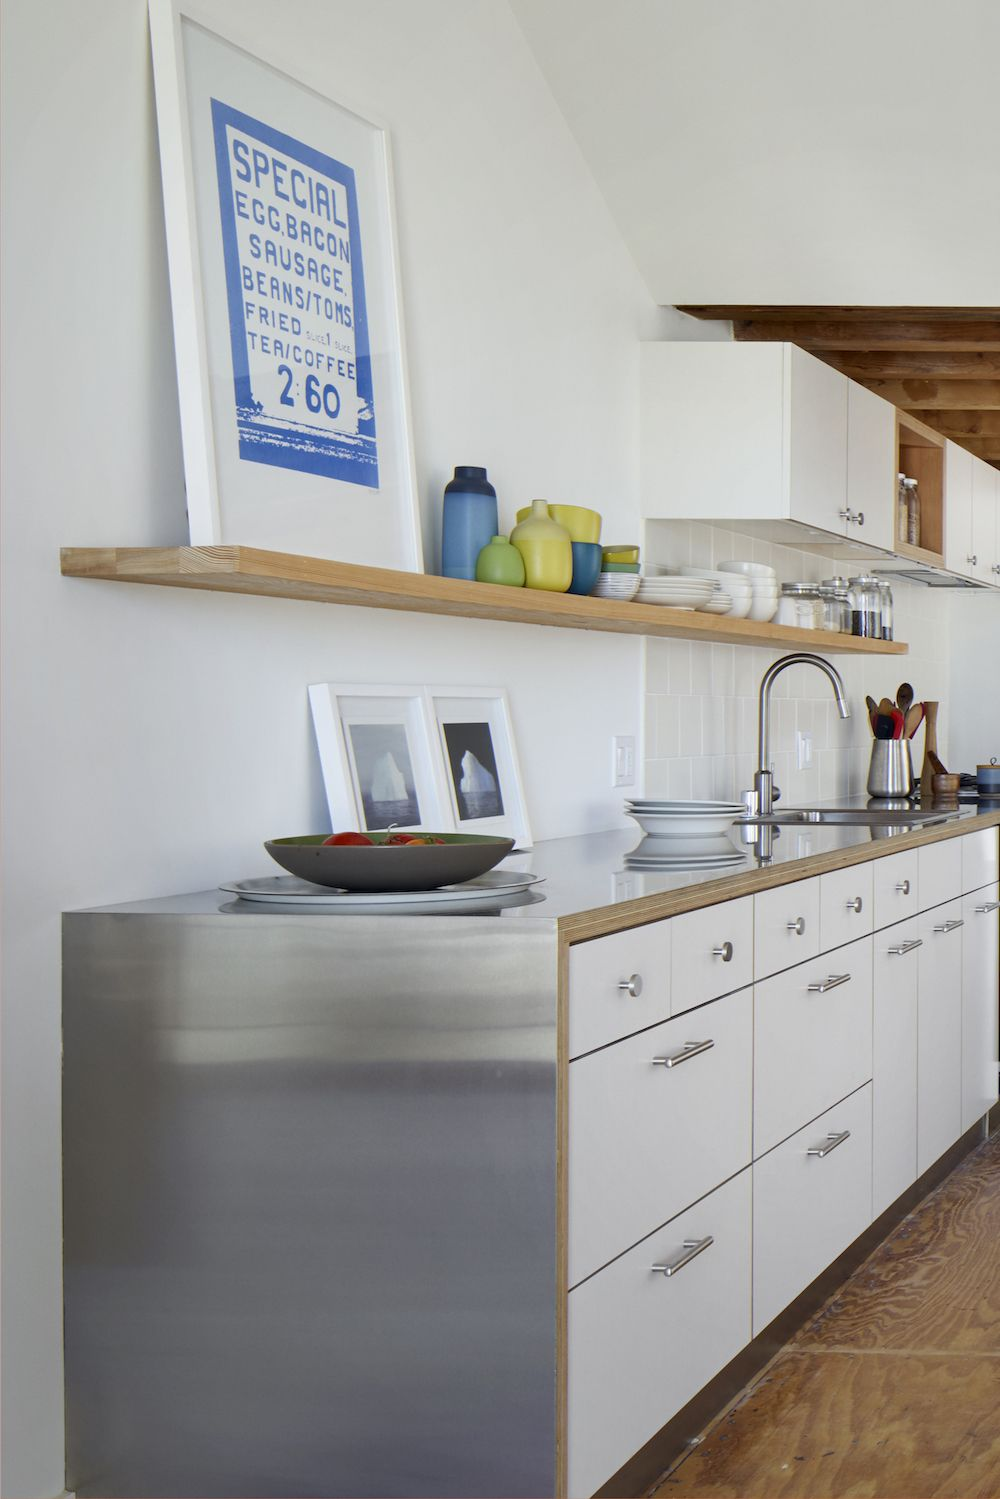 10 favorites: architects' budget kitchen countertop picks